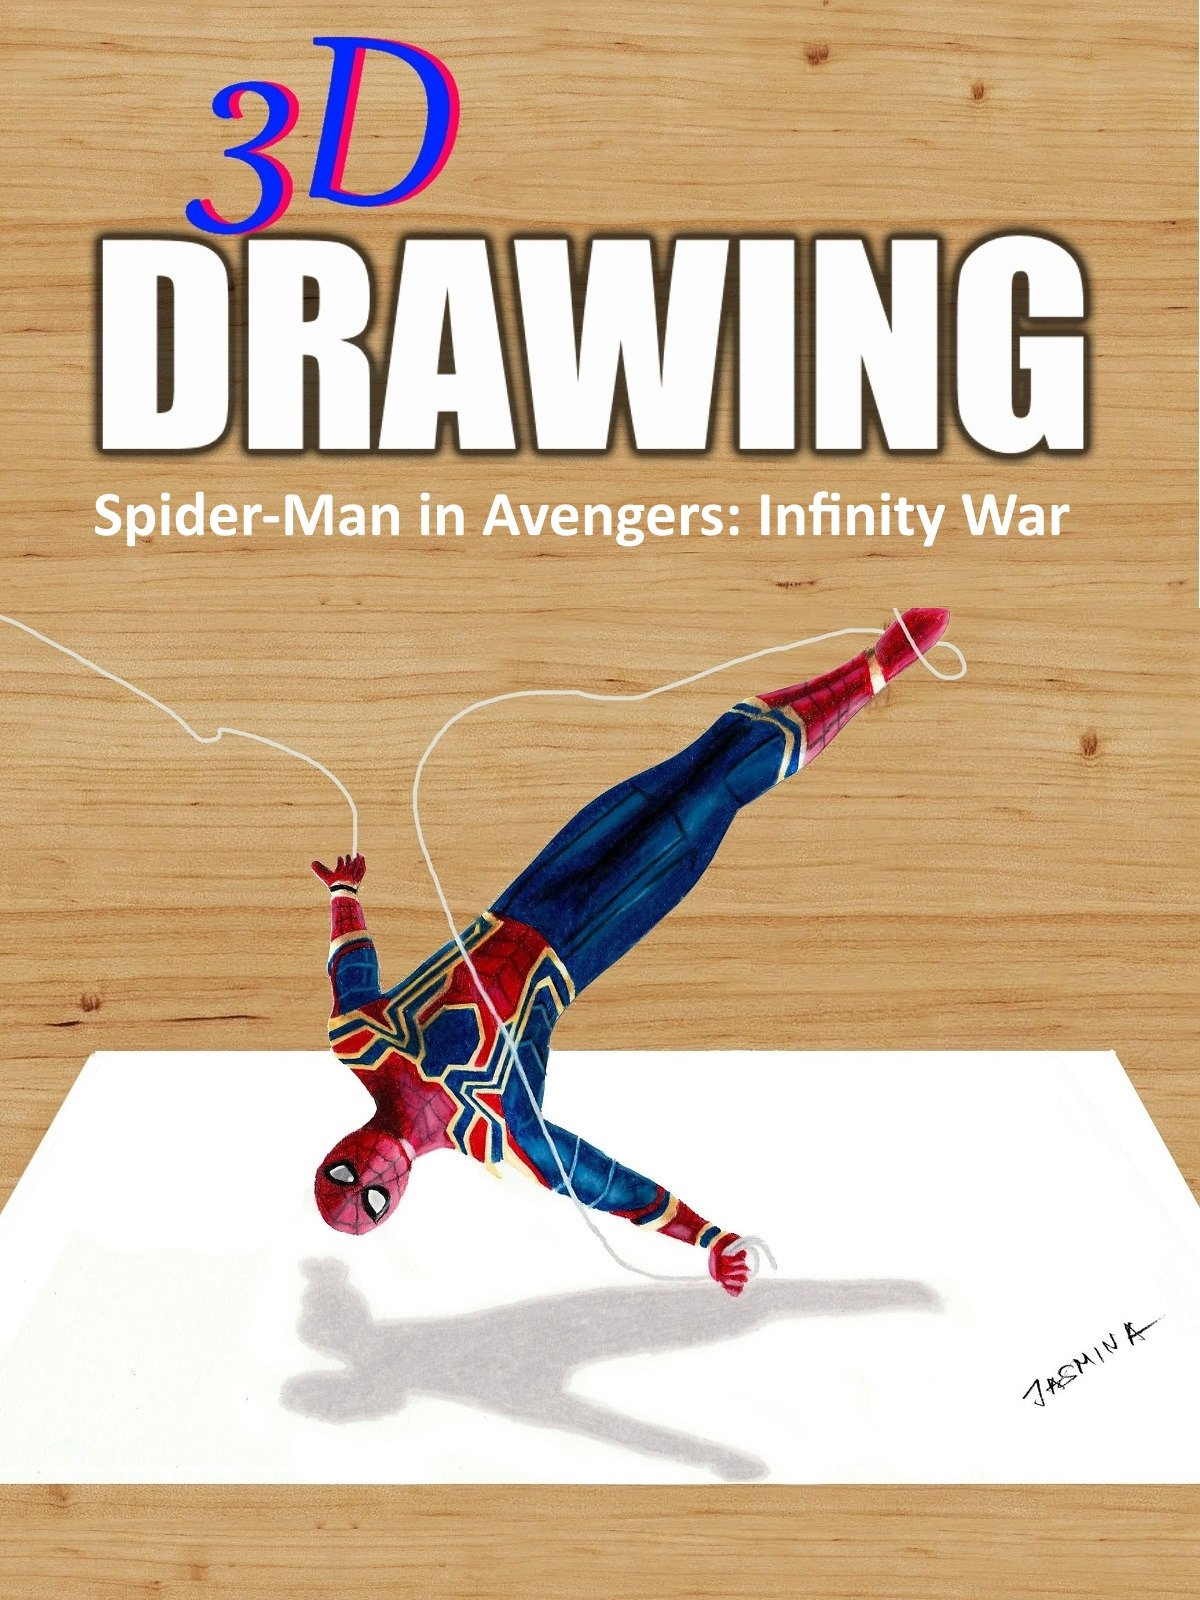 3D Drawing Spider-Man in Avengers: Infinity War by